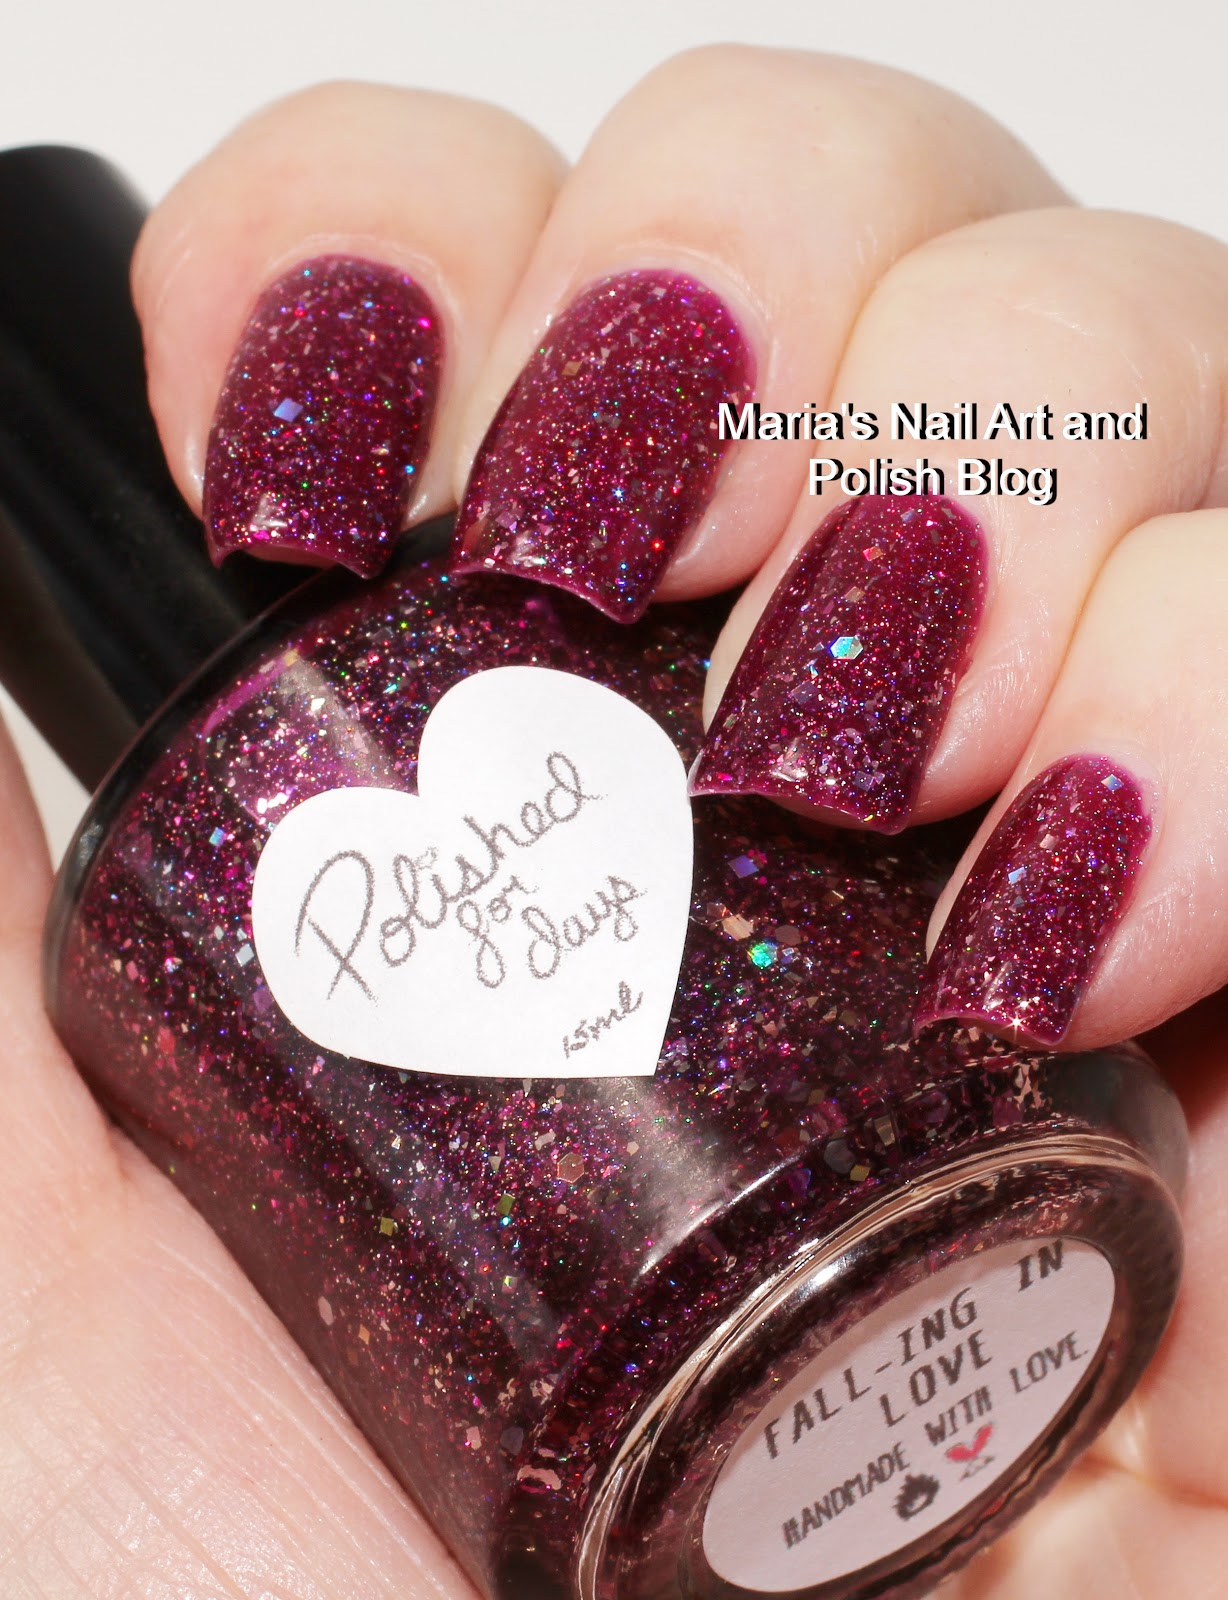 Marias Nail Art and Polish Blog: Polished For Days Fall-ing in Love ...